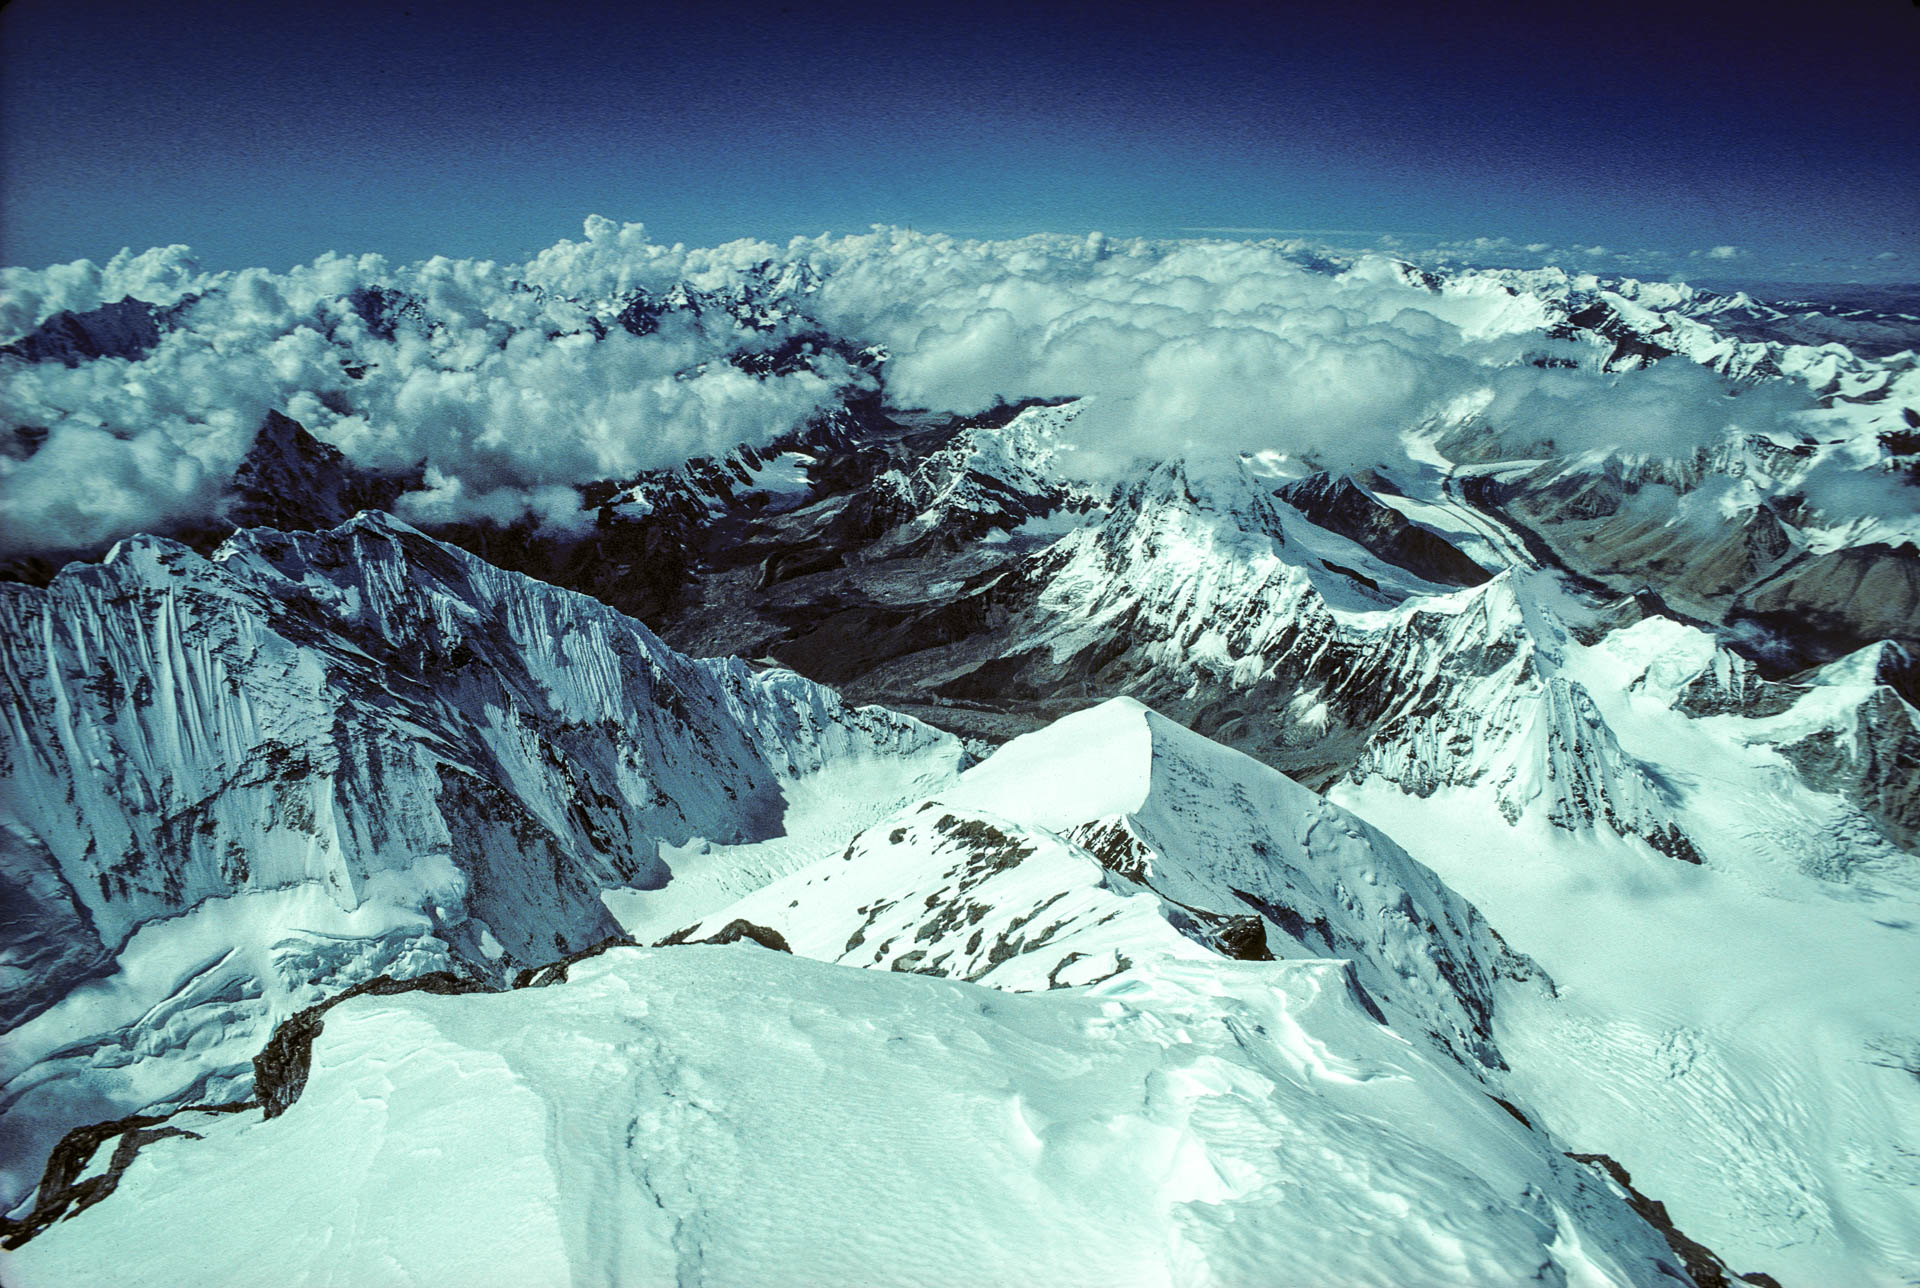 A view of snow covered mountains under a bright blue sky